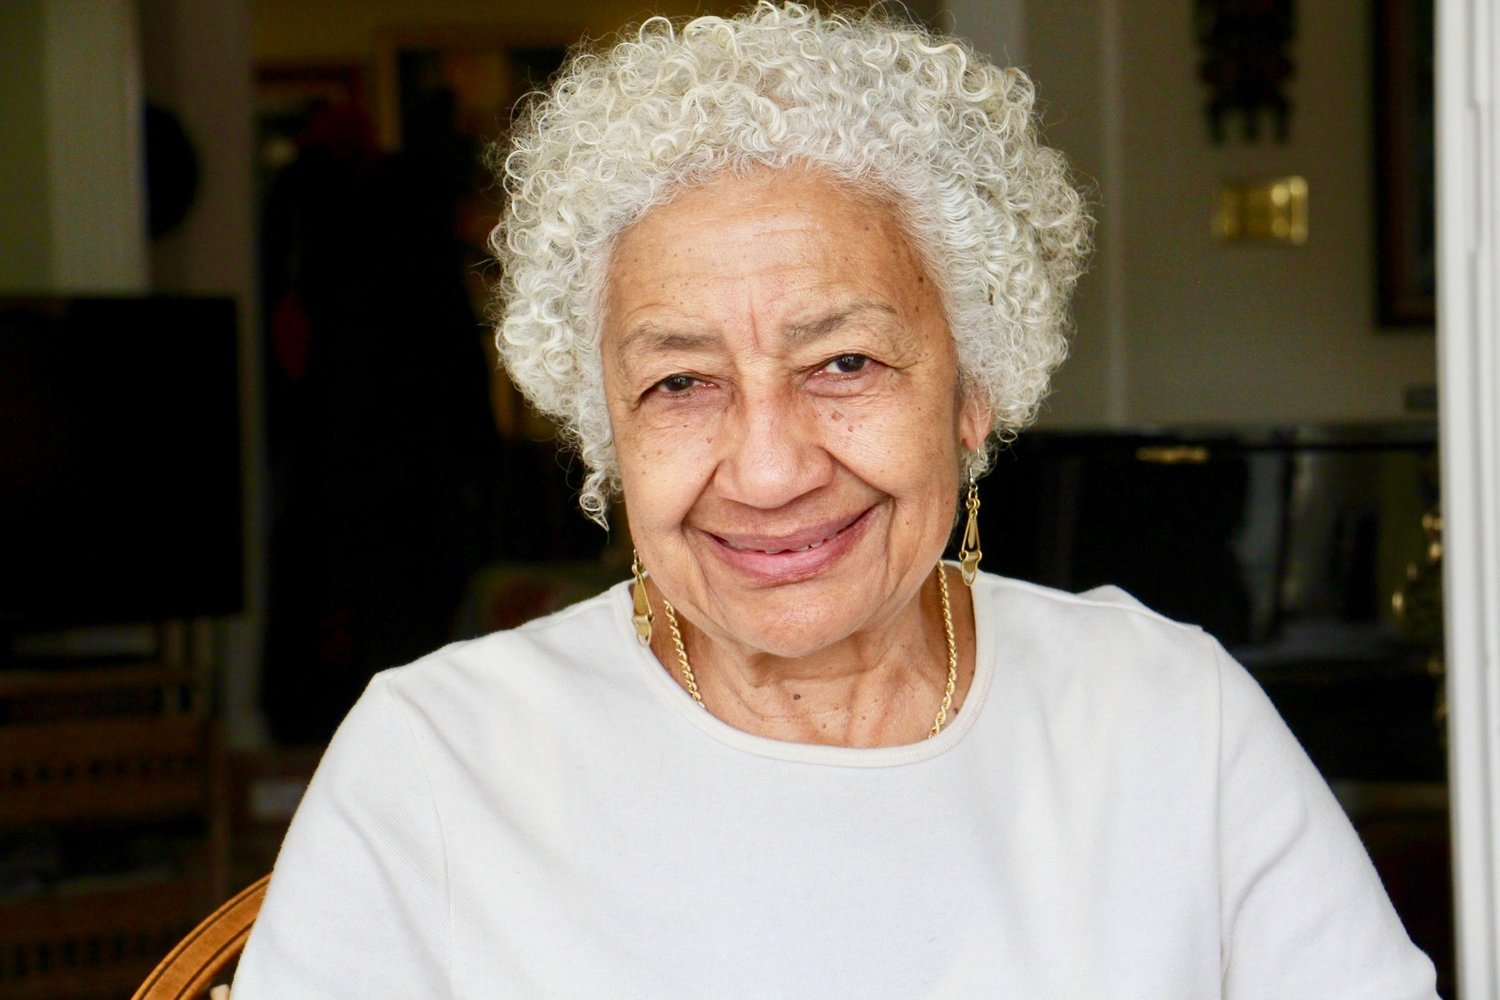 Long-time community activist Yvonne Haskins, a lawyer and former Philadelphia police officer, has quite a remarkable family history. (Photo by Emma Lee/WHYY)